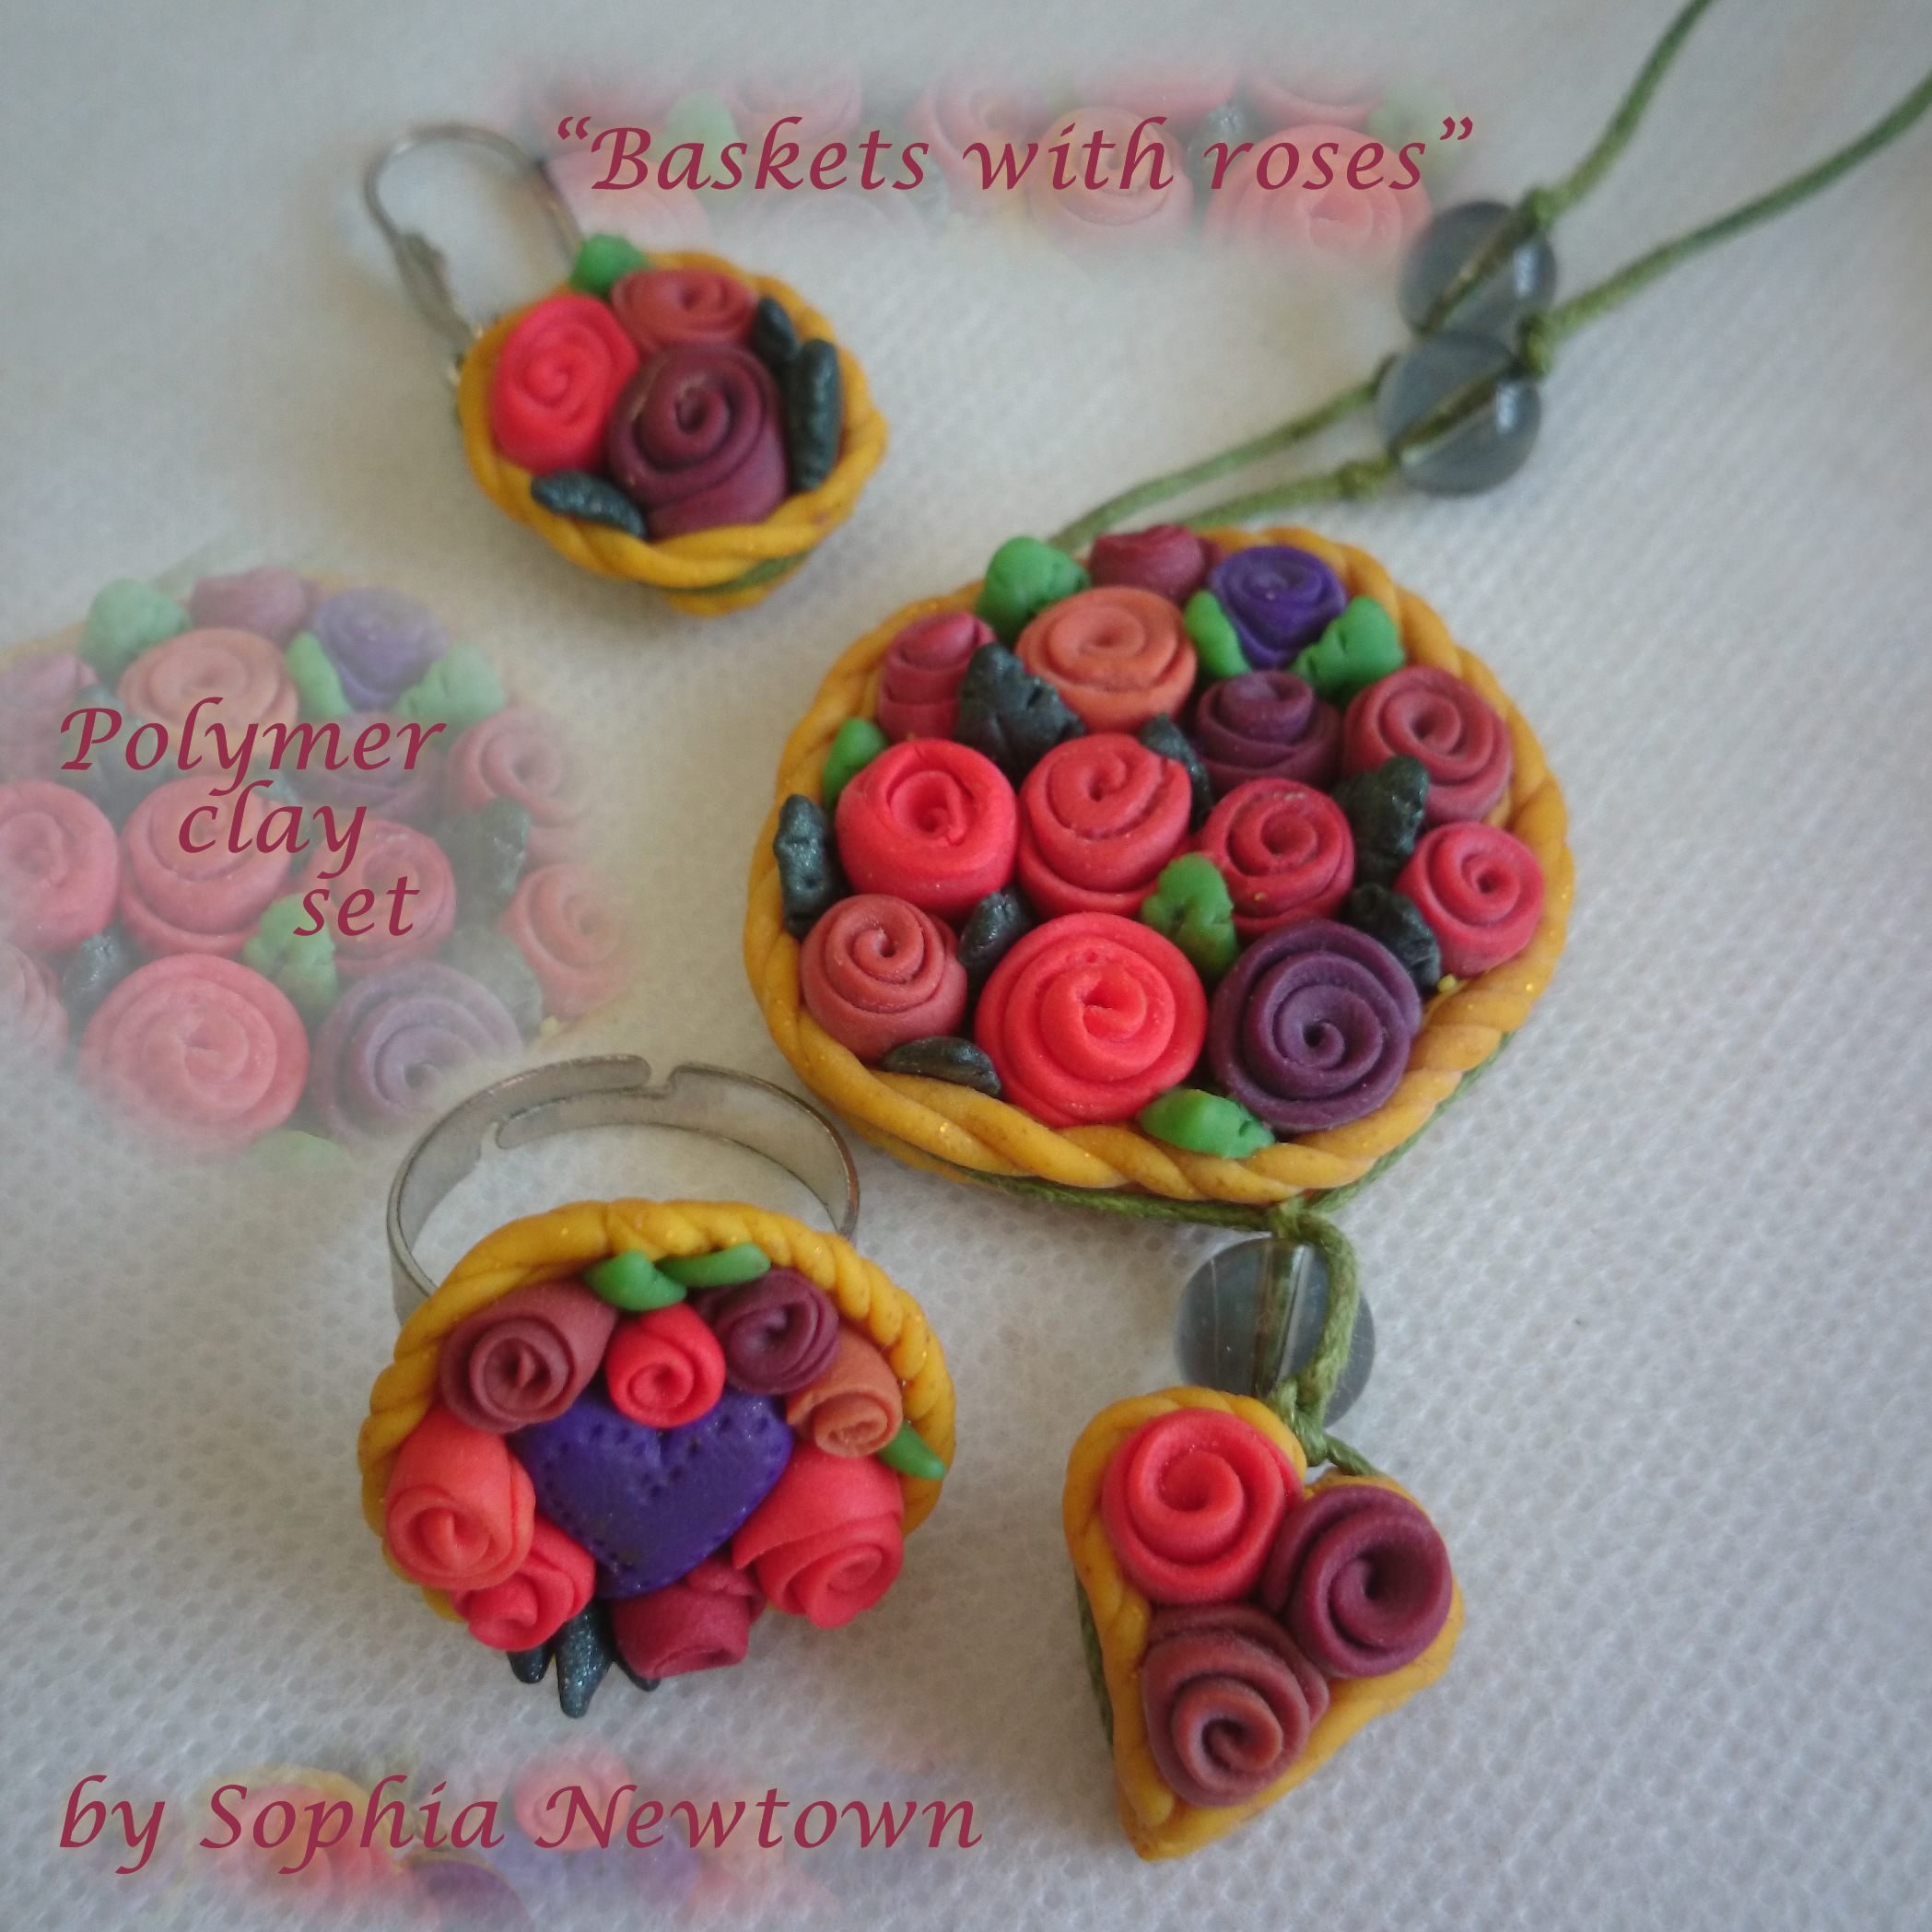 Baskets with roses jewelry set